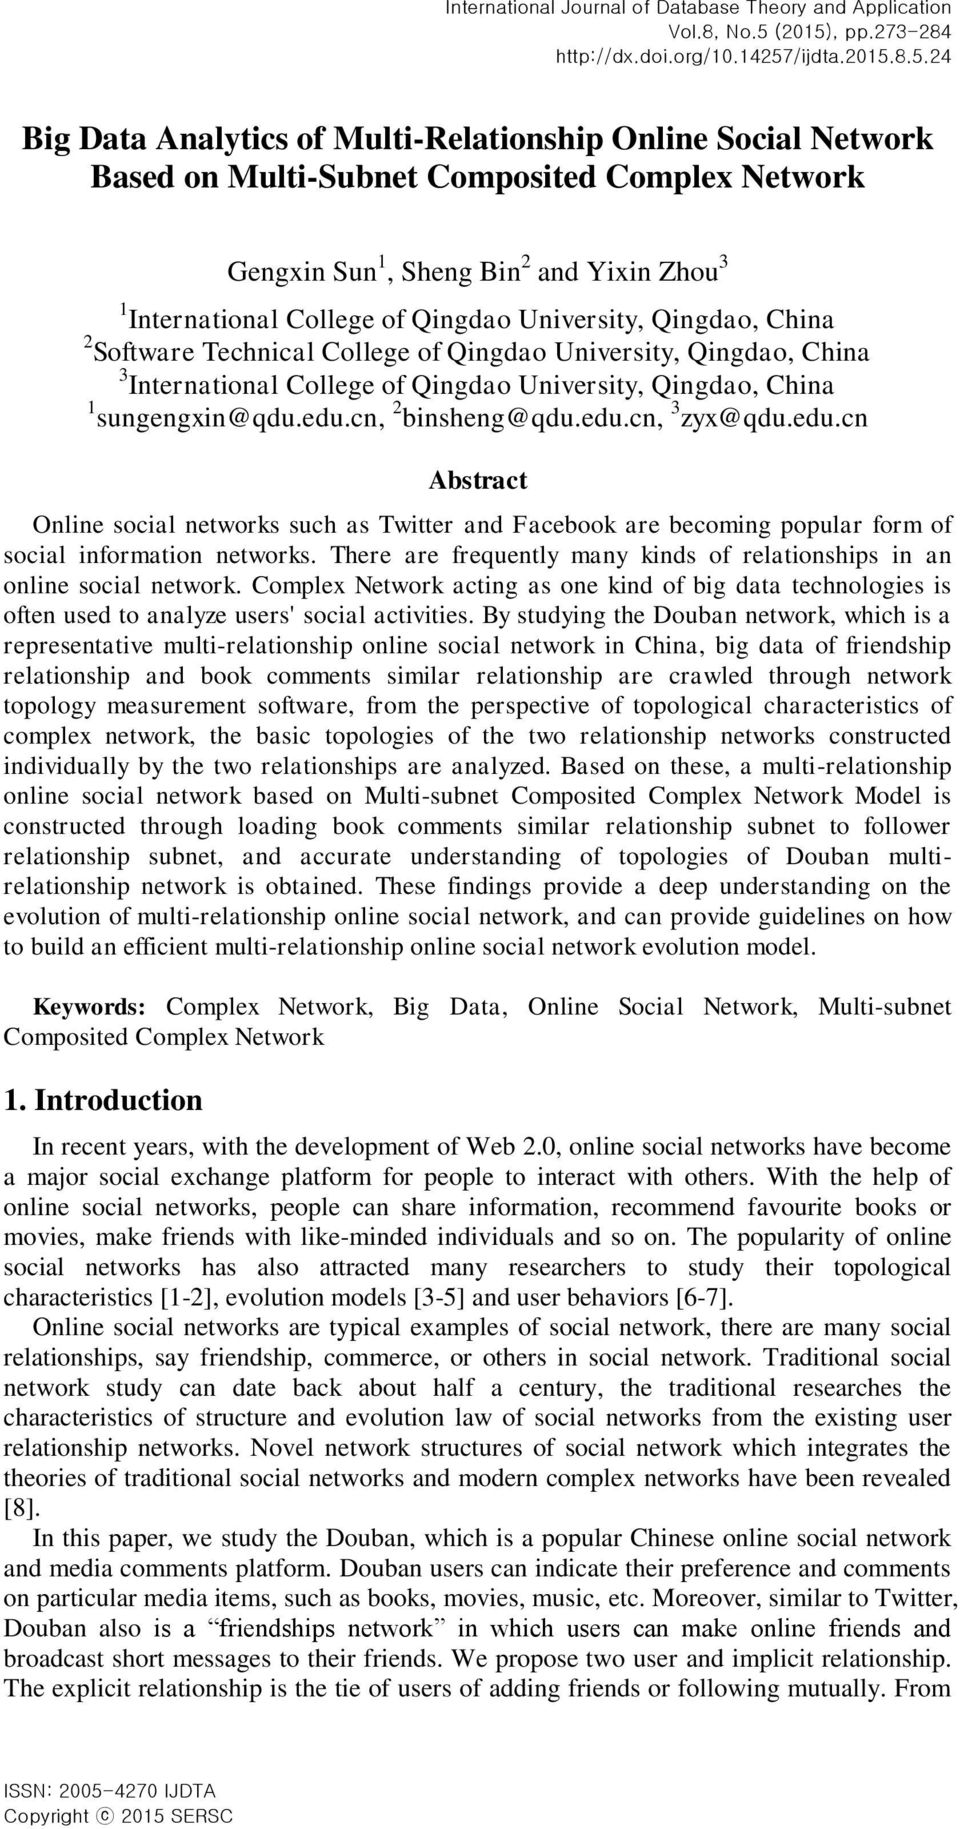 8.5.24 Big Data Analytics of Multi-Relationship Online Social Network Based on Multi-Subnet Composited Complex Network Gengxin Sun 1, Sheng Bin 2 and Yixin Zhou 3 1 International College of Qingdao